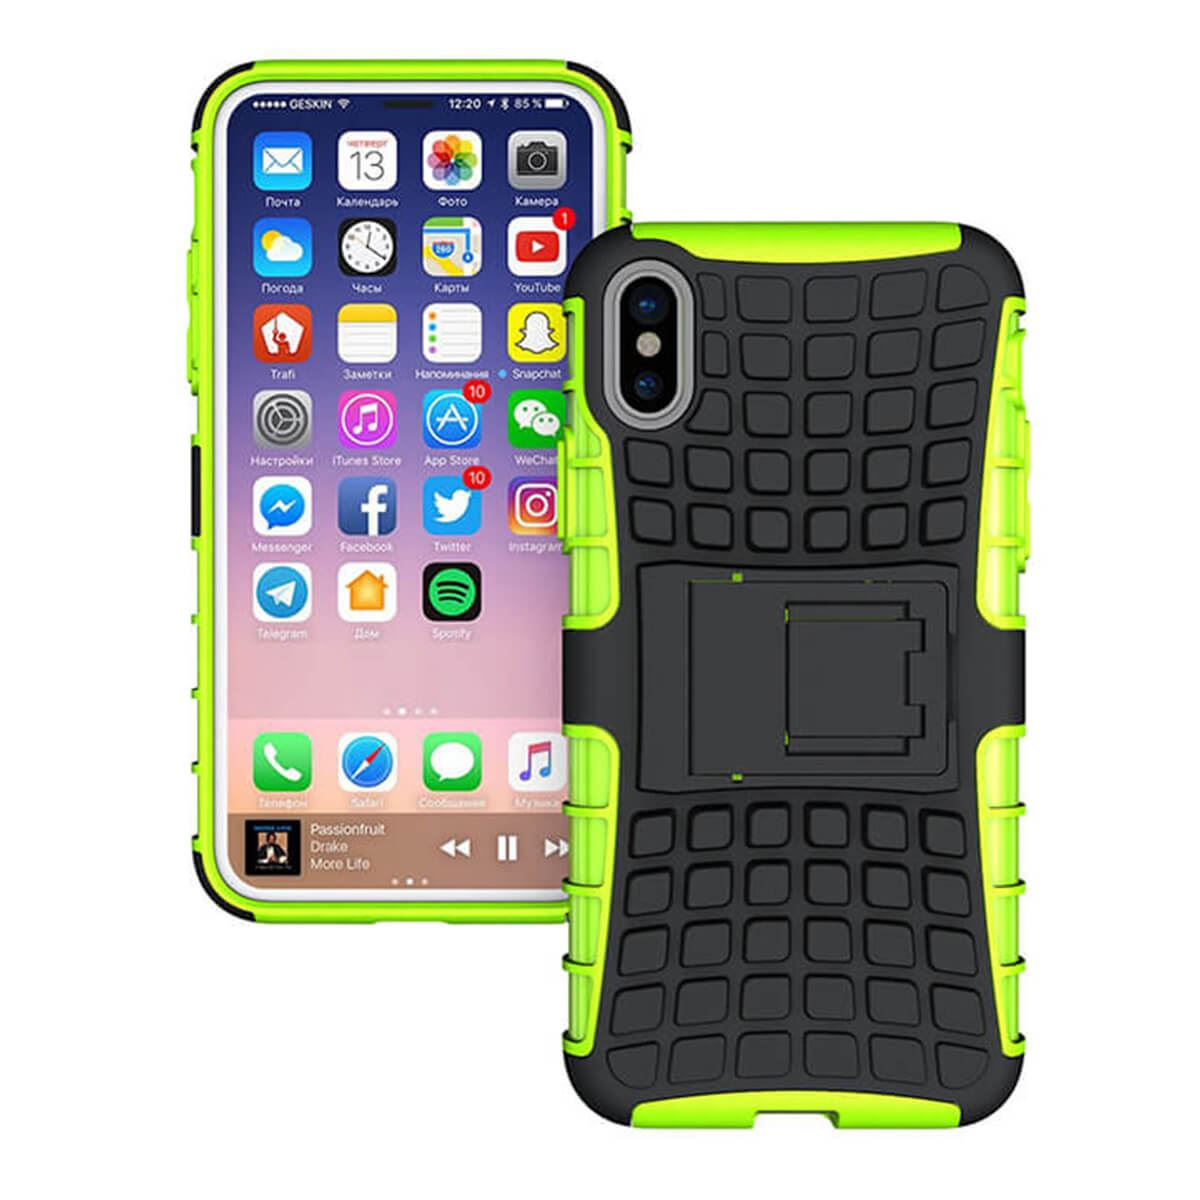 Shockproof-Case-Apple-iPhone-10-X-8-7-6s-Se-5-Hard-Heavy-Duty-Stand-Armour-Cover thumbnail 9